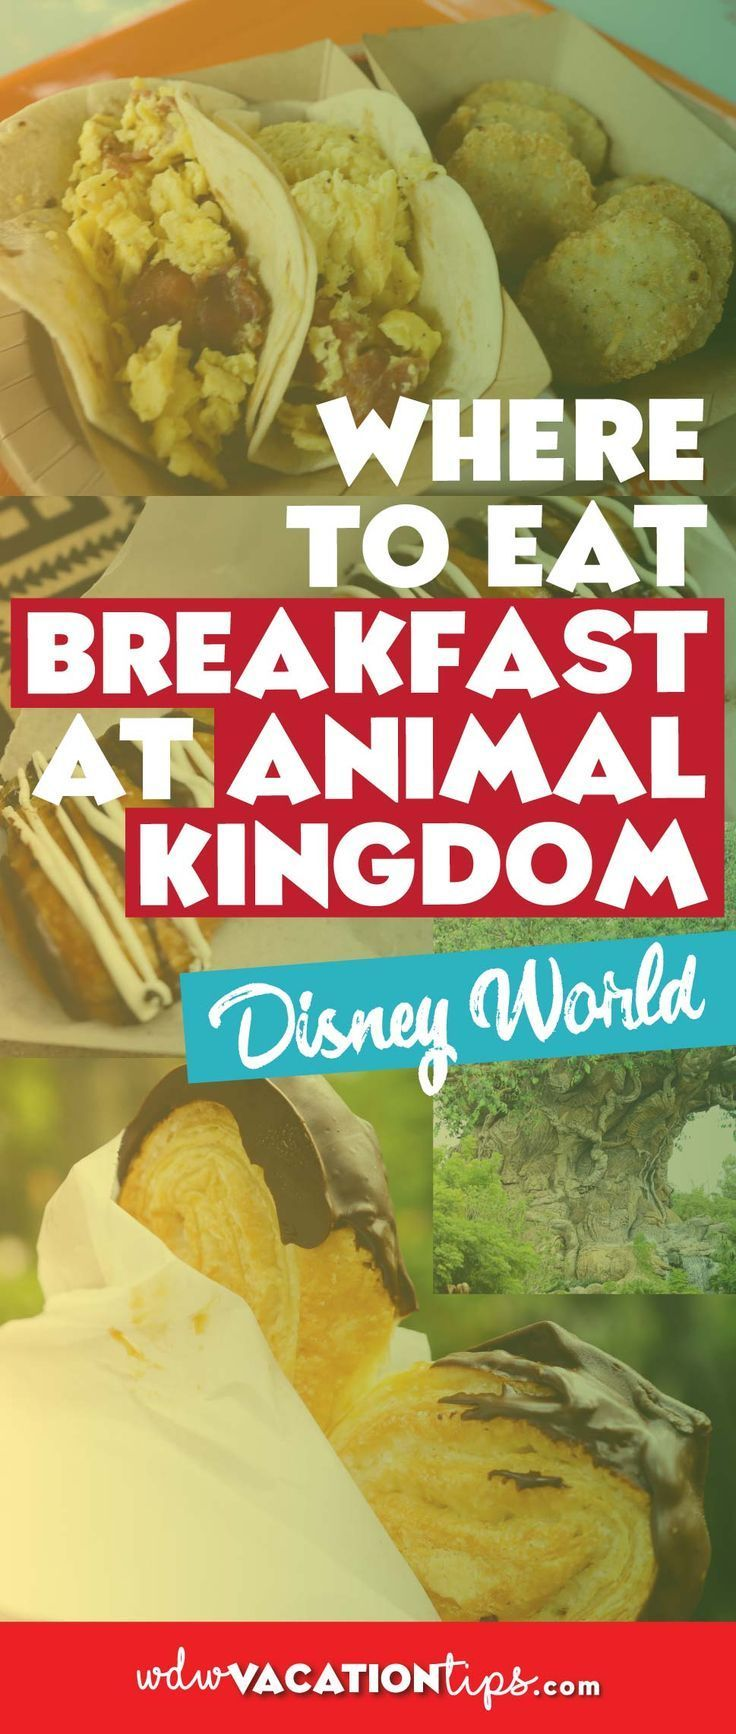 Where to Eat Breakfast at Disney's Animal Kingdom #animalkingdom